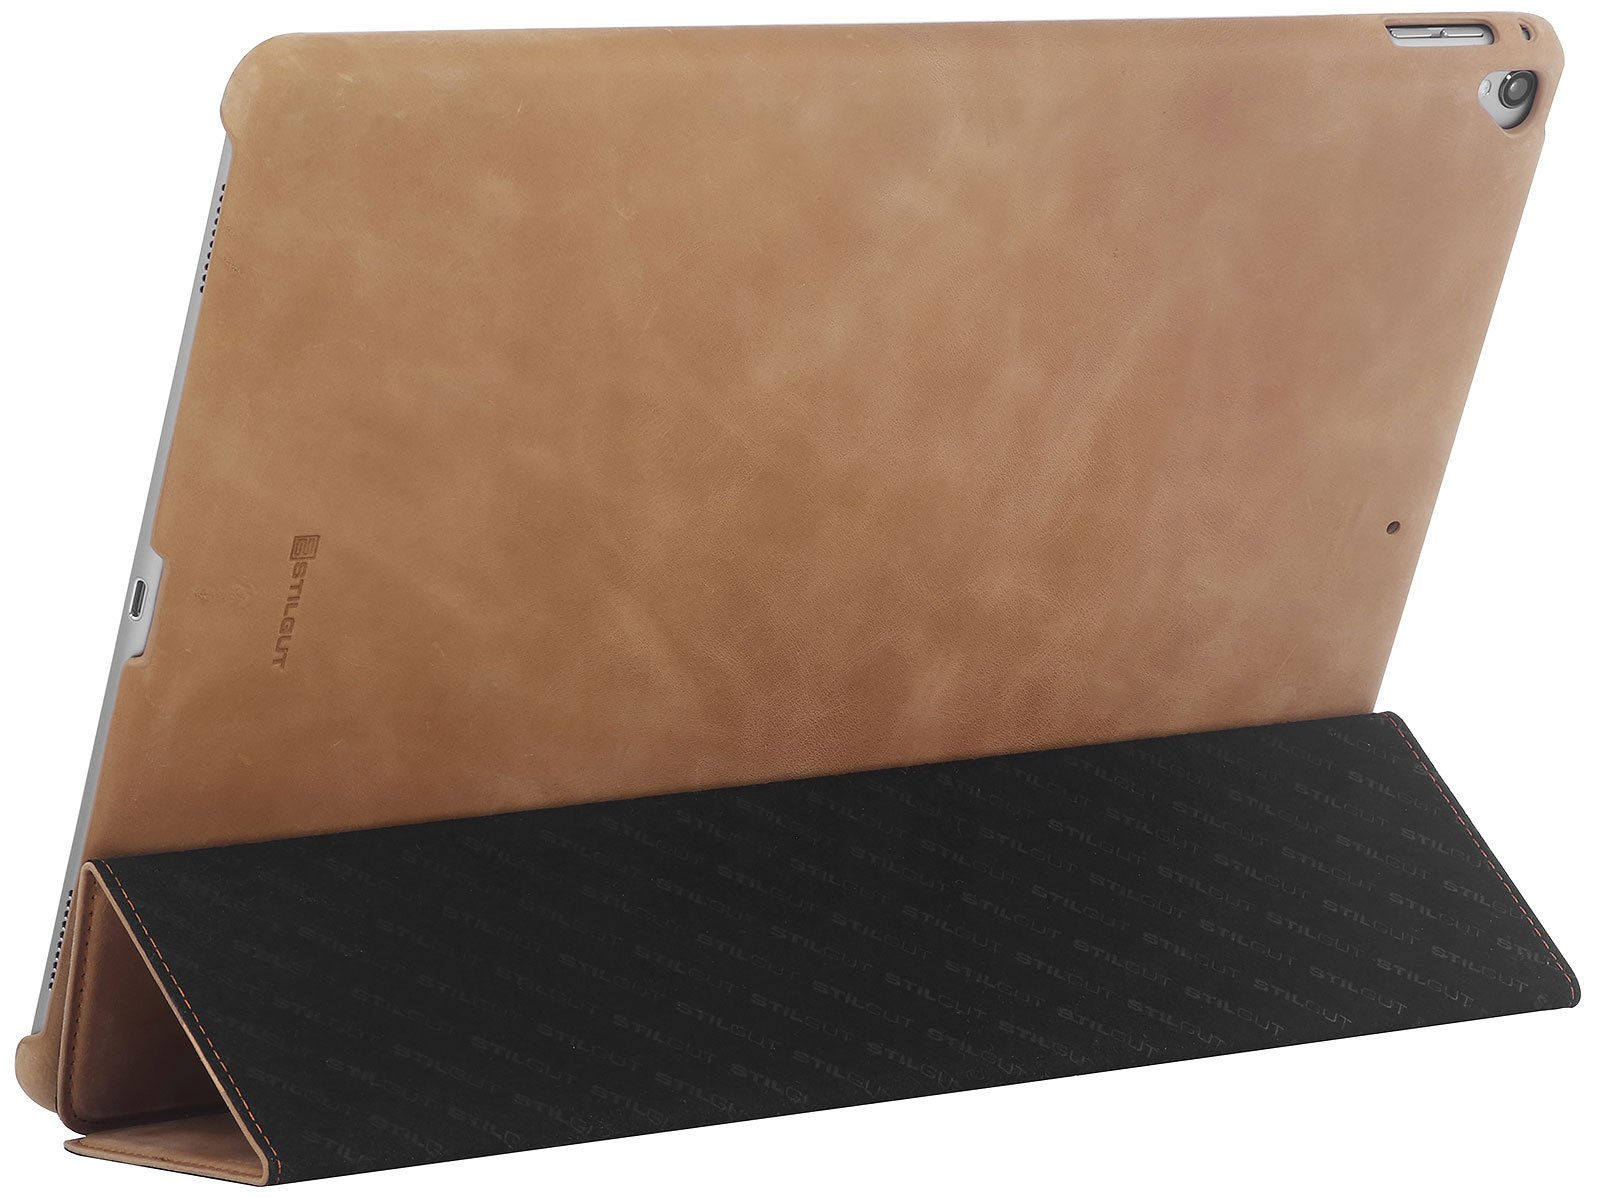 StilGut Case for Apple iPad Pro 12.9'' (2017 and Previous Editions), Genuine Leather Case with Folded Cover Design, Stand Function & Smart-Cover (Auto Sleep, Wake-up), Cognac Vintage